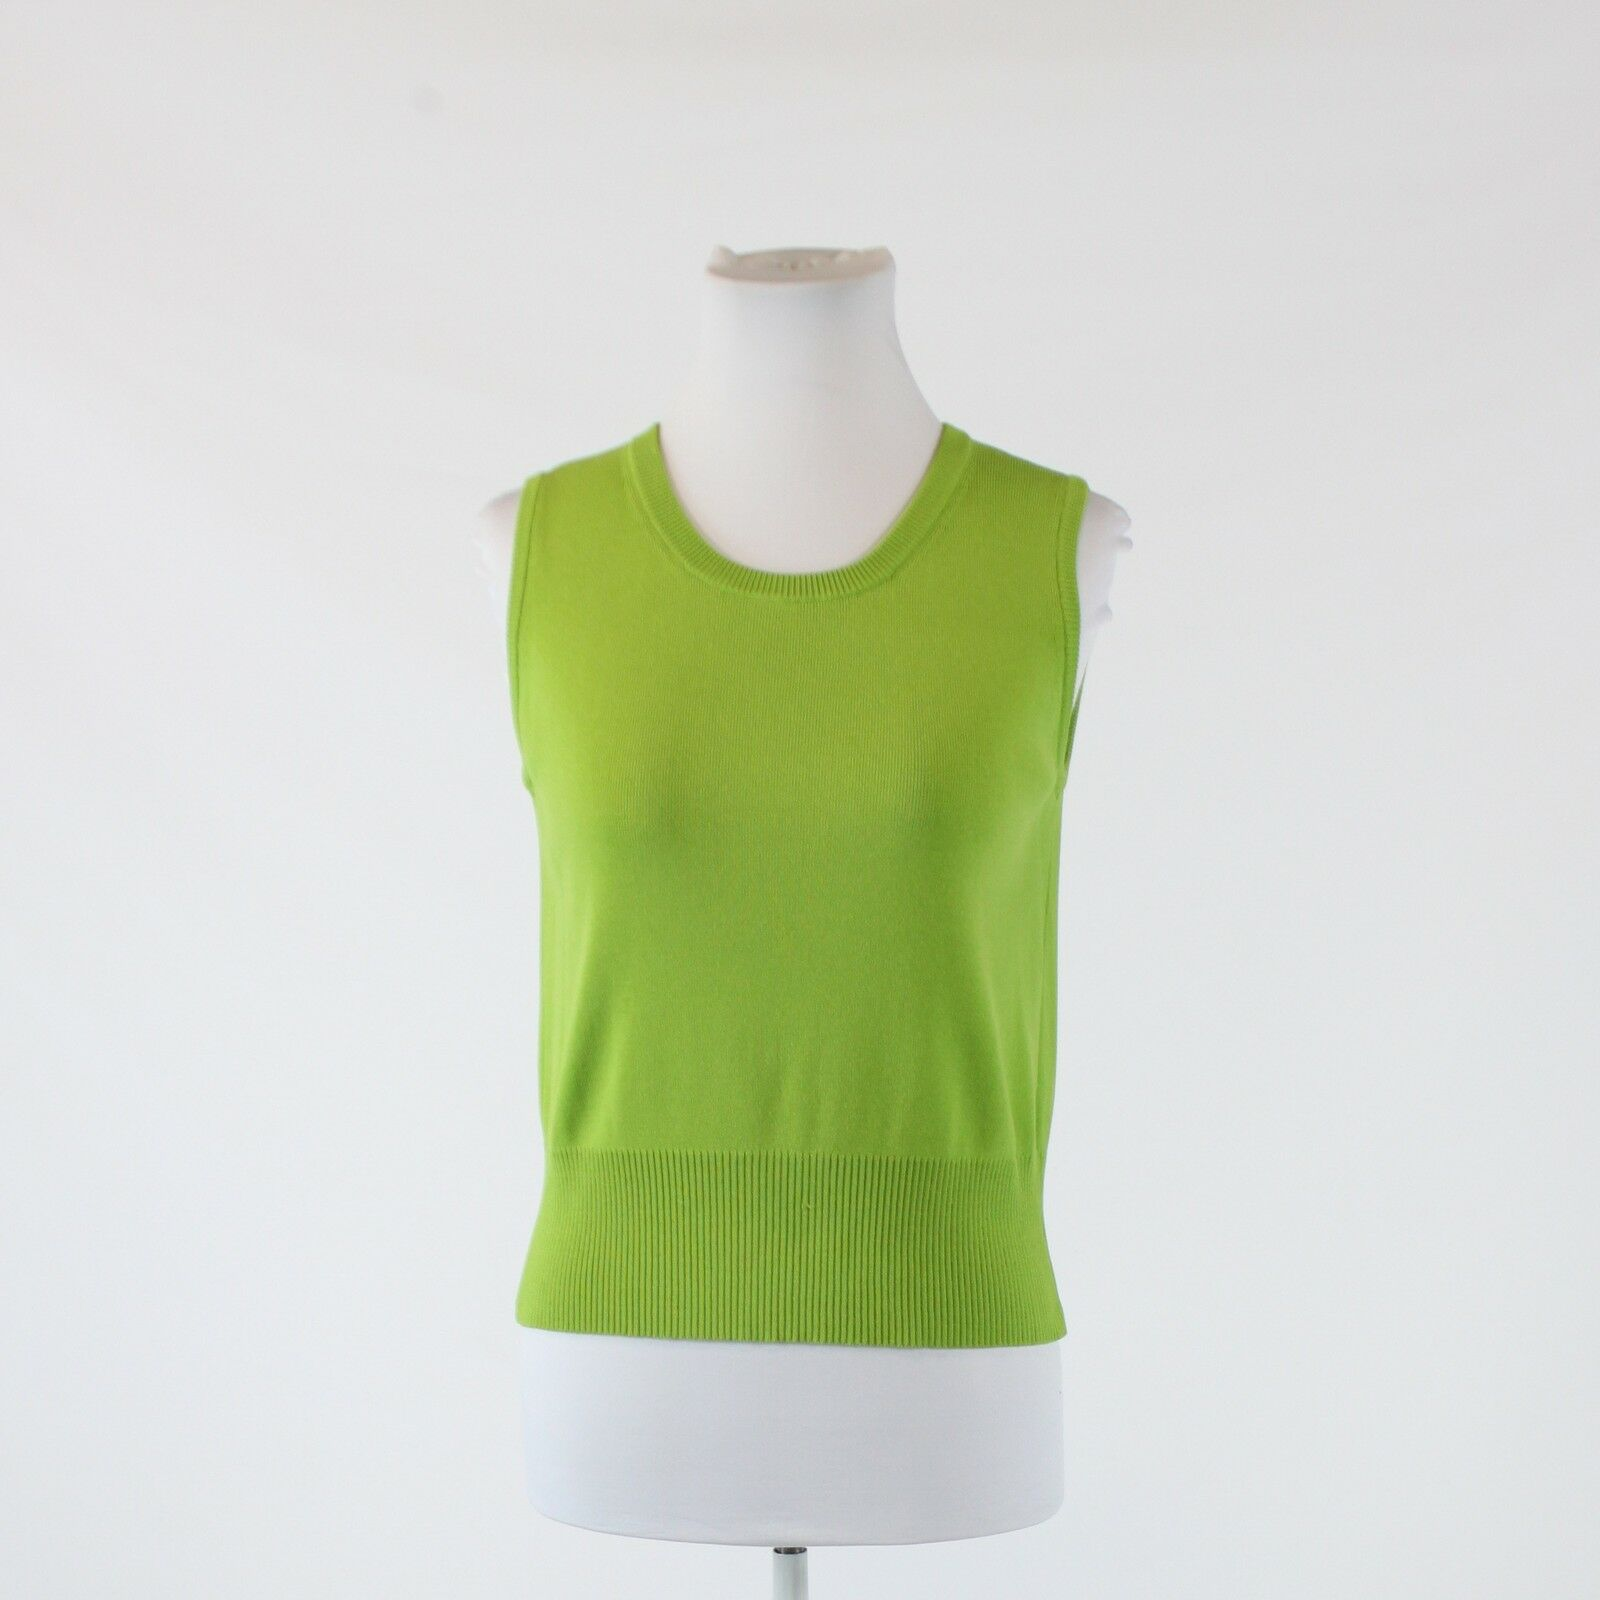 Green stretch JOSEPH A. scoop neck ribbed trim sleeveless sweater vest L